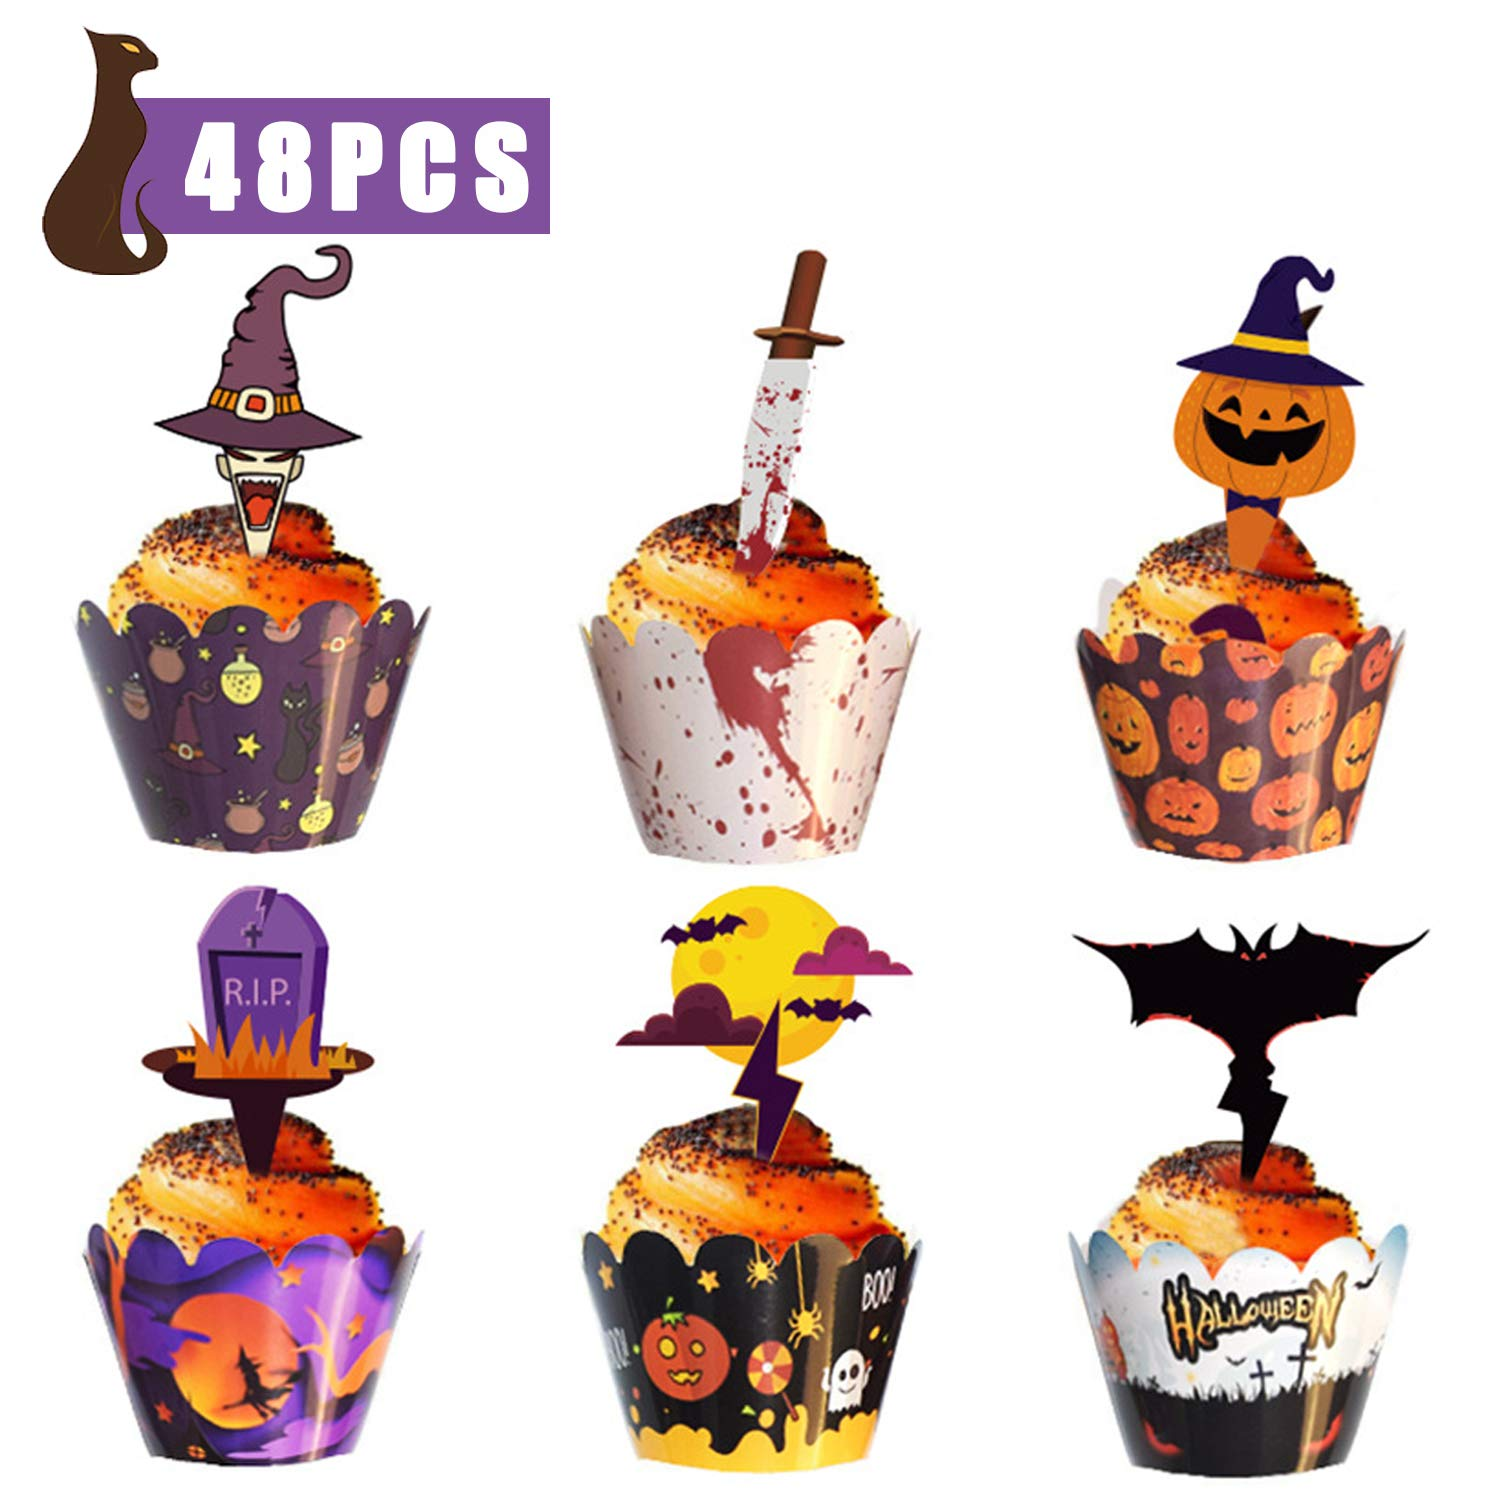 Halloween Cake Toppers Decorations, Cake Paper Cups, Cupcake Decoration Wrapper Cases, 48 Pieces Halloween Cupcake Decorations Set, Used for Halloween Baking, Birthday Parties, Ghost Festivals